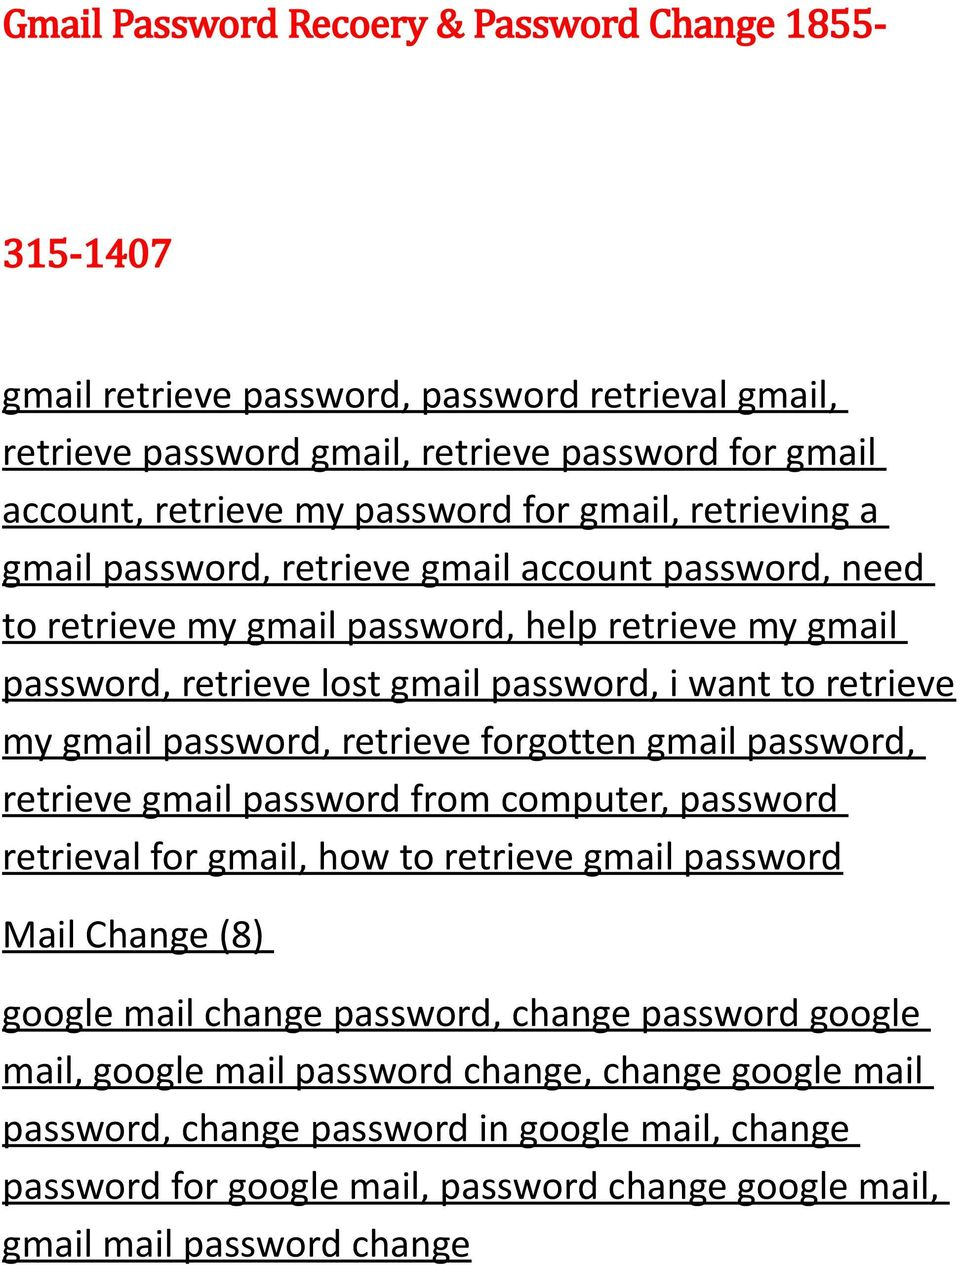 Gmail Password Recoery & Password Change PDF